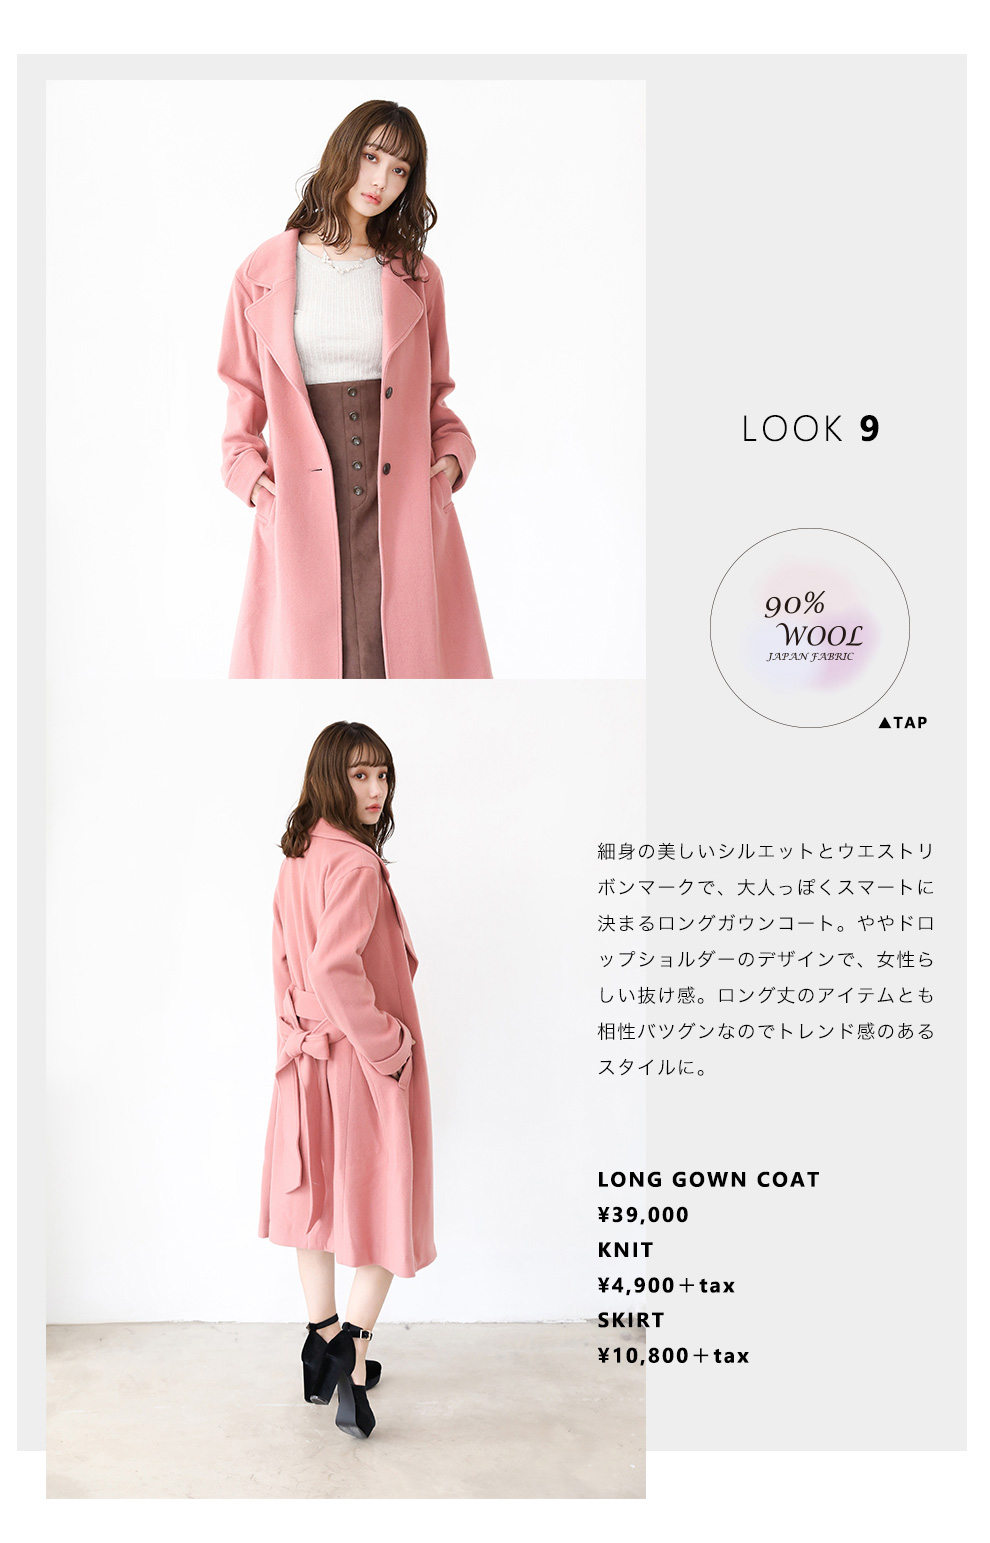 THE COAT COLLECTION FEMME / WINTER 2018